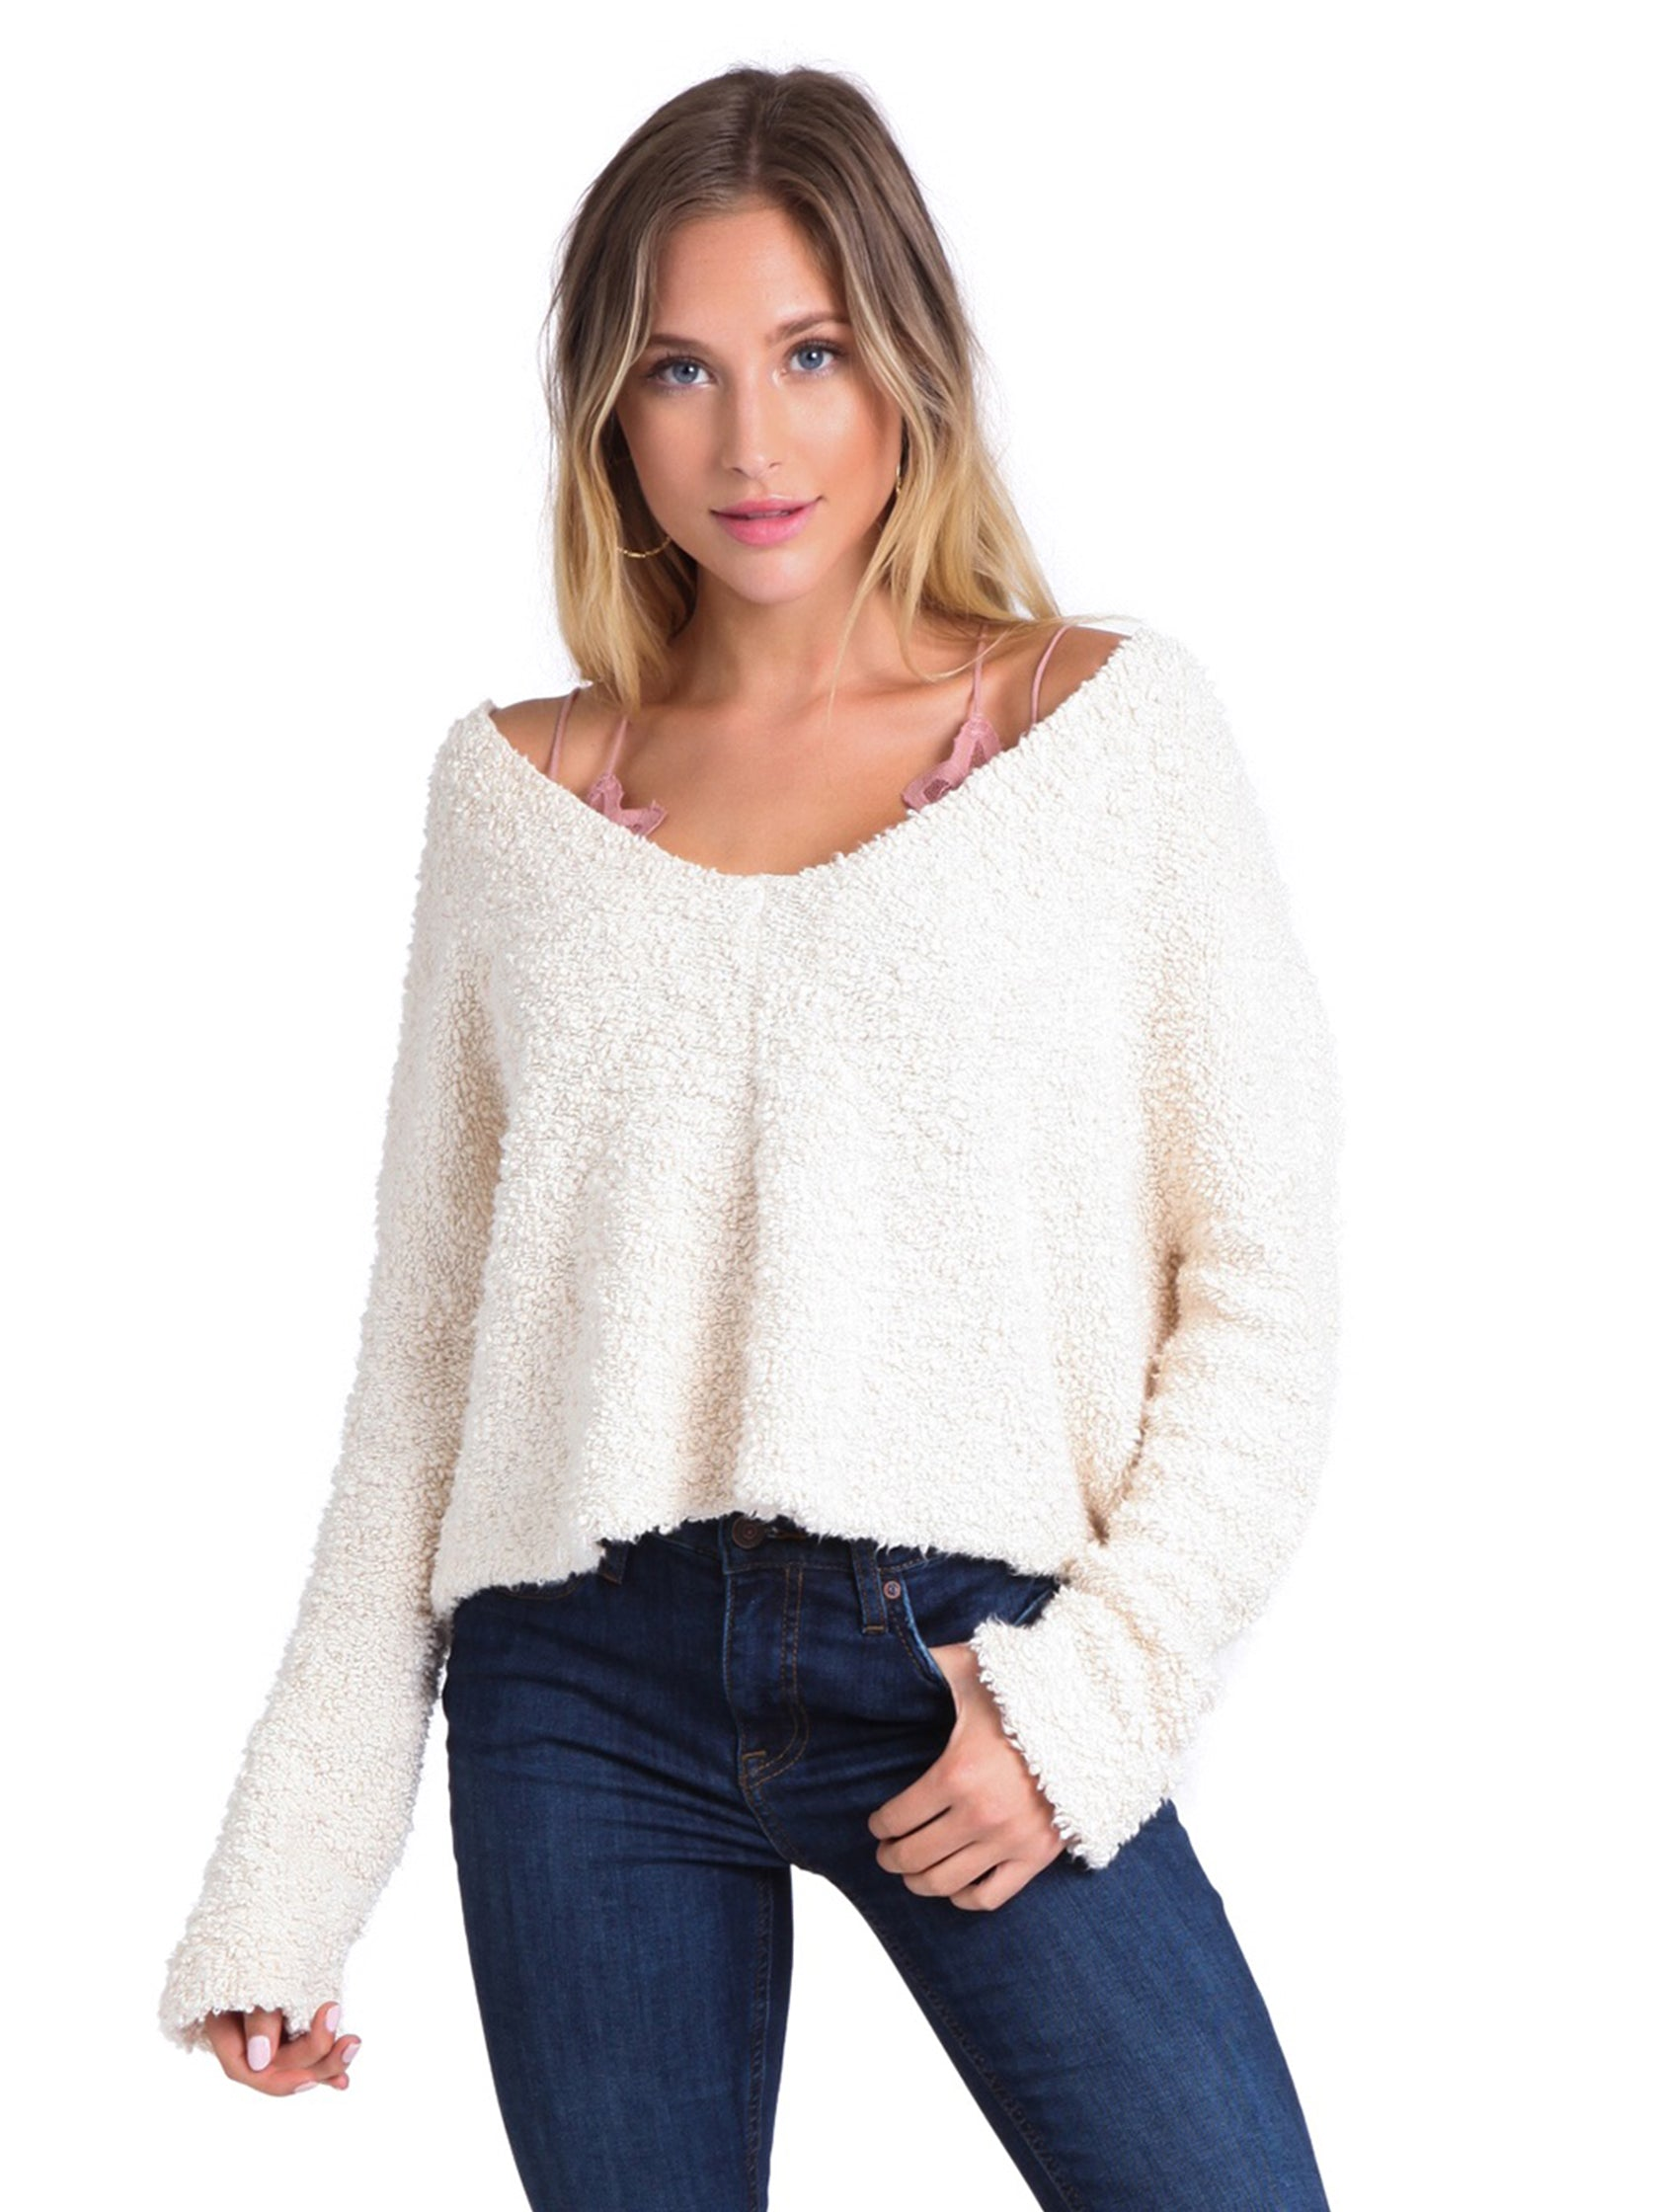 Woman wearing a sweater rental from Free People called Popcorn Pullover